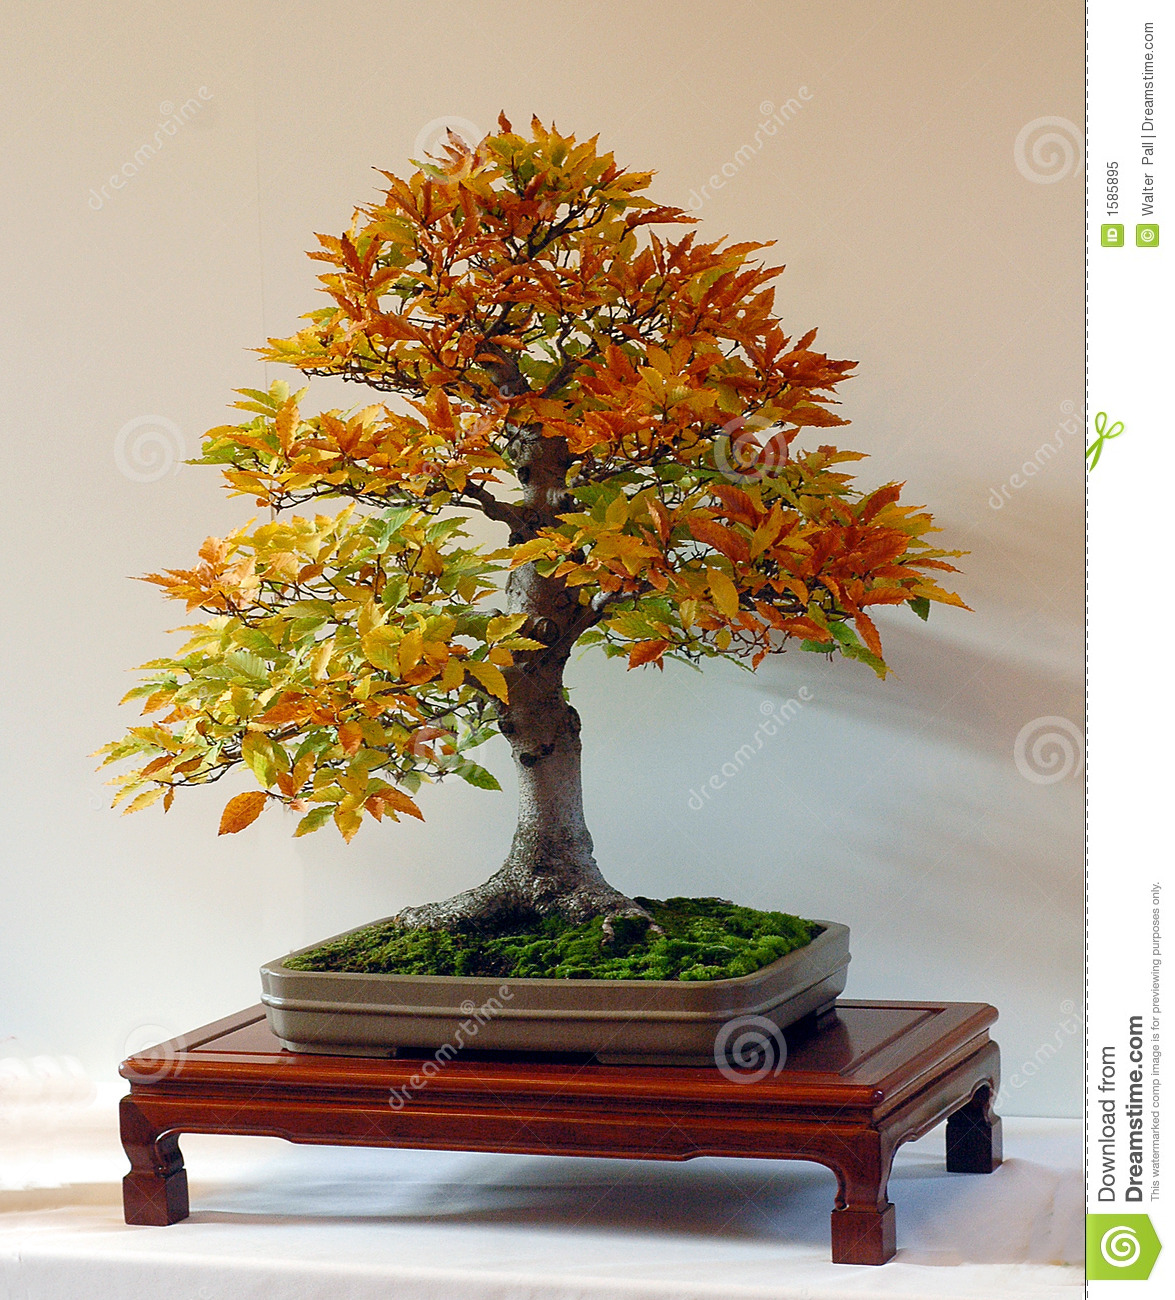 Beech bonsai in fall color